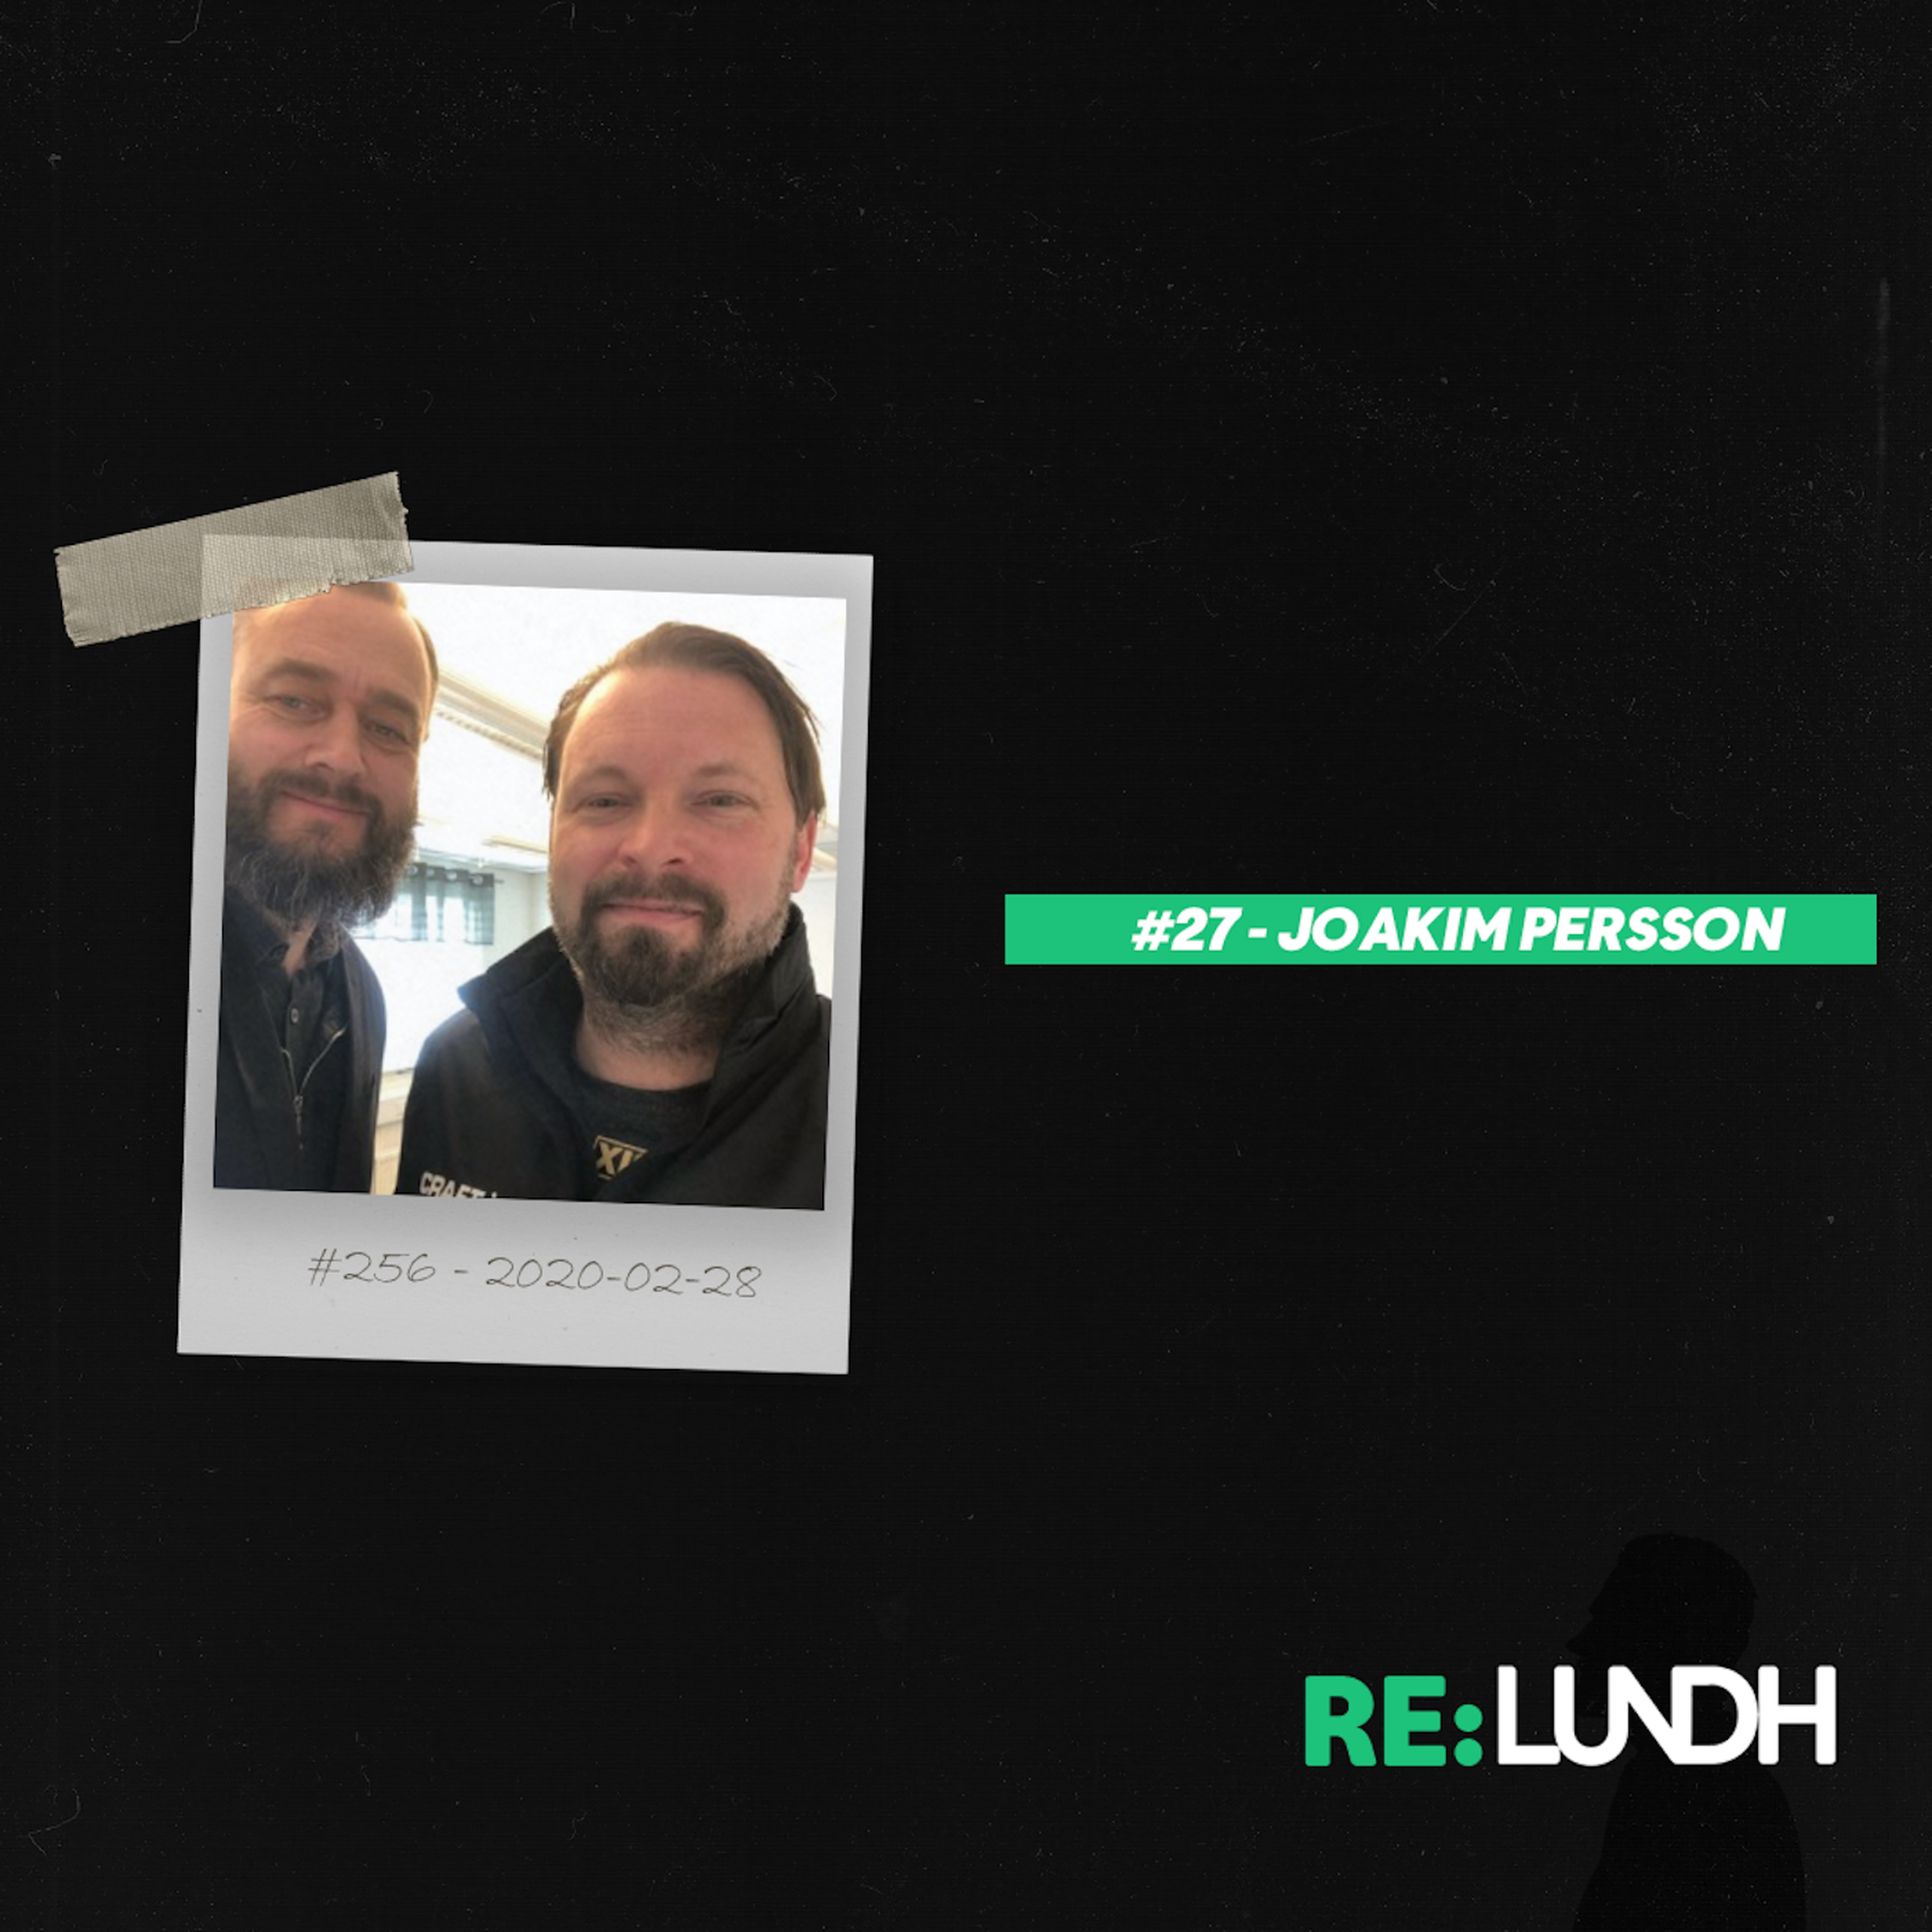 27 Re:Lundh – Joakim Persson